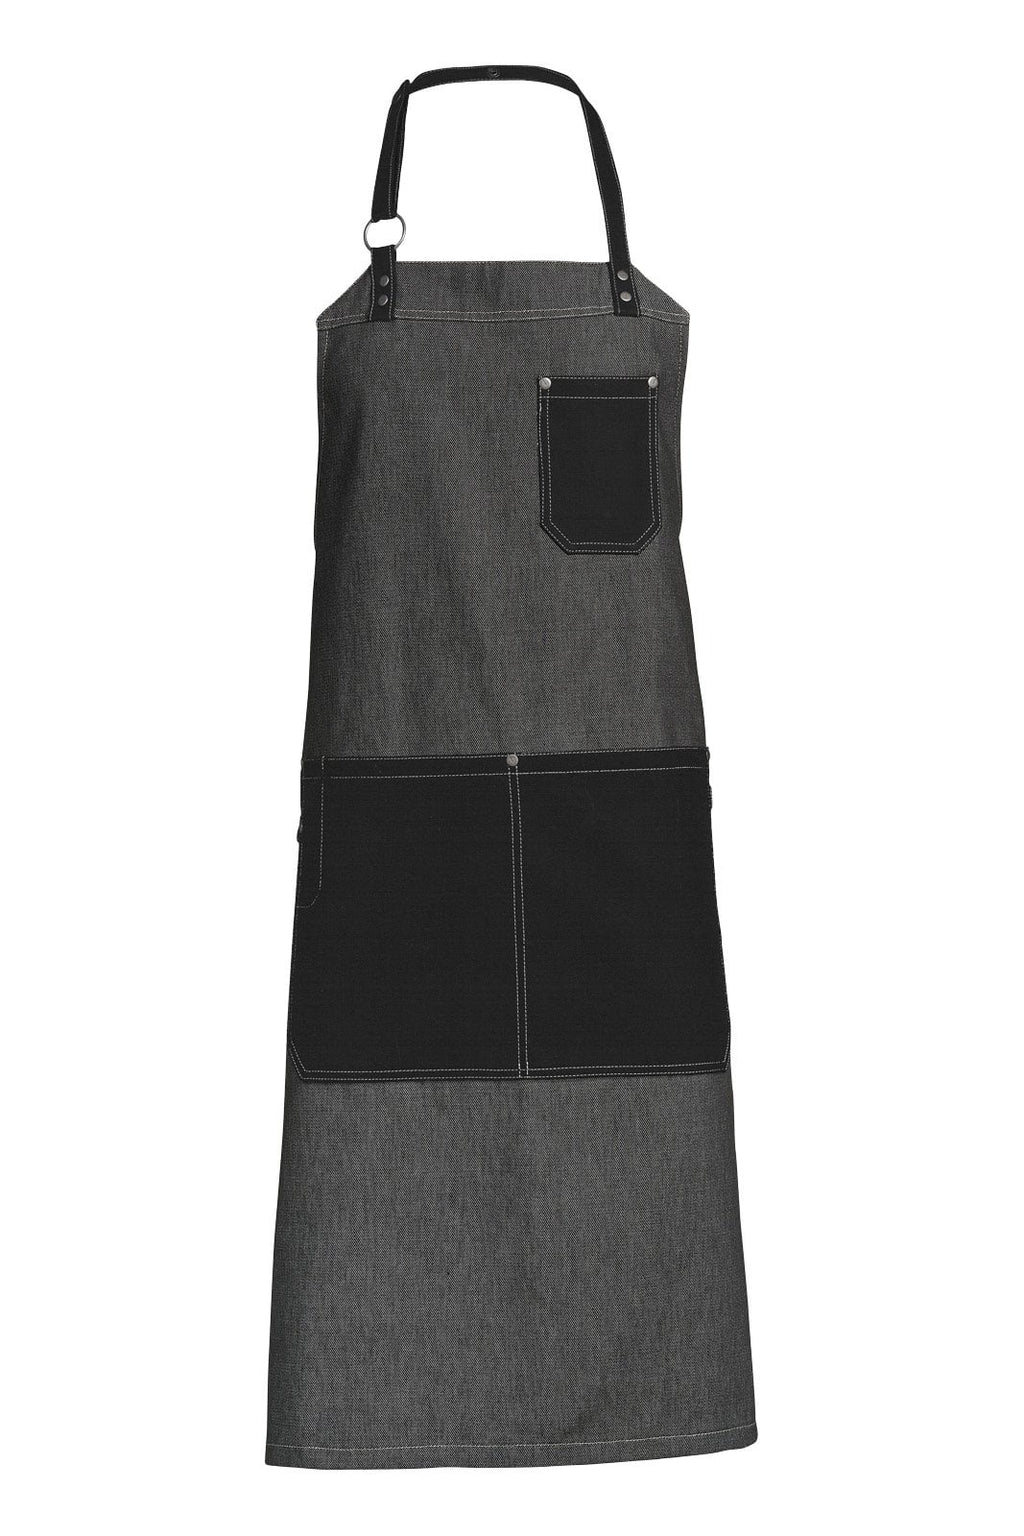 Kentaur 30390 Raw Bib Apron Black